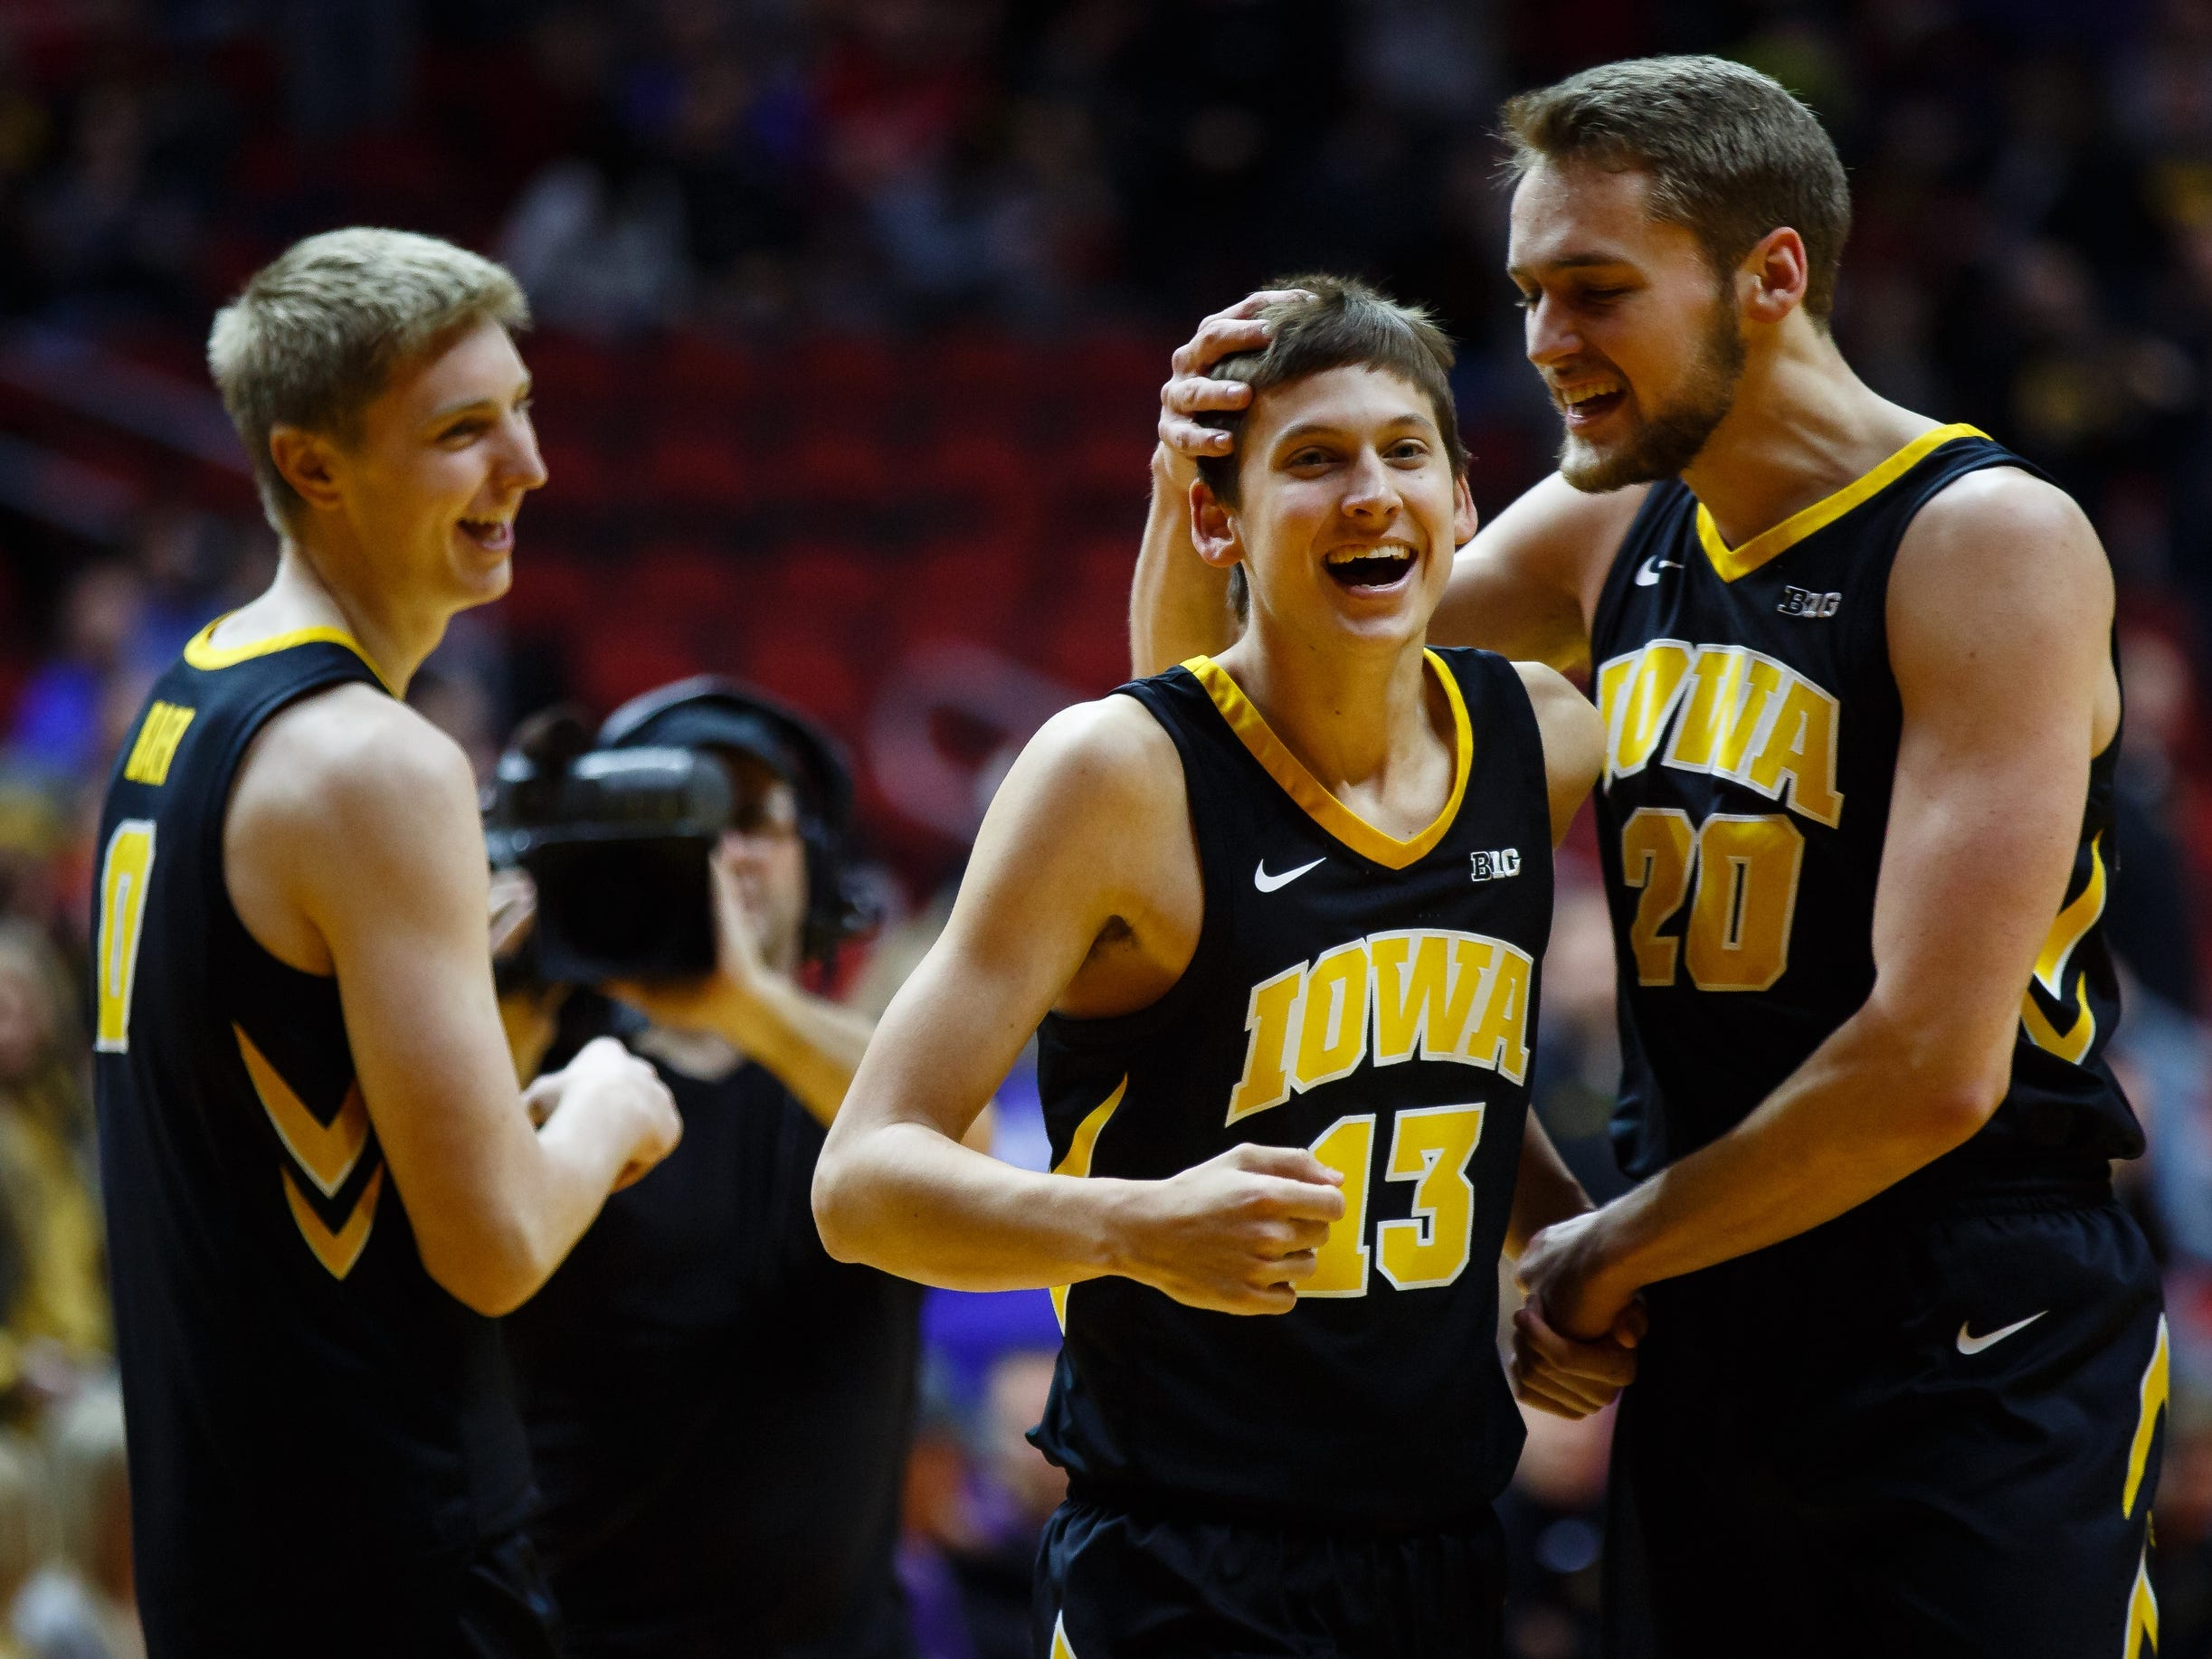 Iowa's Austin Ash (13) is congratulated by Iowa's Riley Till (20) after making a three point shot during their basketball game at the Hy-Vee Classic on Saturday, Dec. 15, 2018, in Des Moines. Iowa would go on to defeat UNI 77-54.